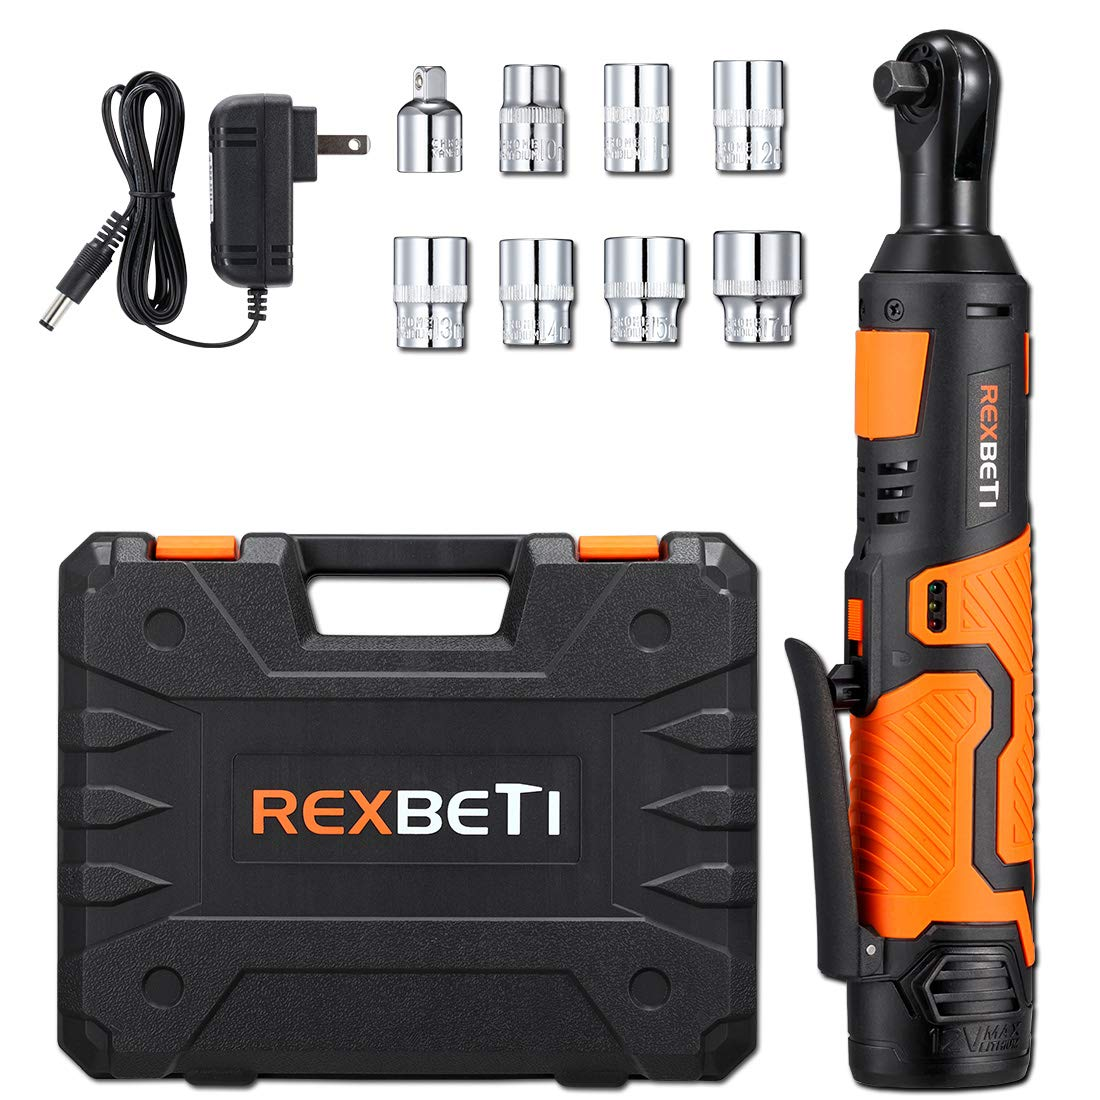 REXBETI Cordless 3/8'' Electric Ratchet Wrench Set with 12V Lithium-Ion Battery and Charger Kit, Include 7-piece 3/8'' Metric Sockets and 1-piece 1/4'' Socket Adapter, 45Nm of Maximum Torque